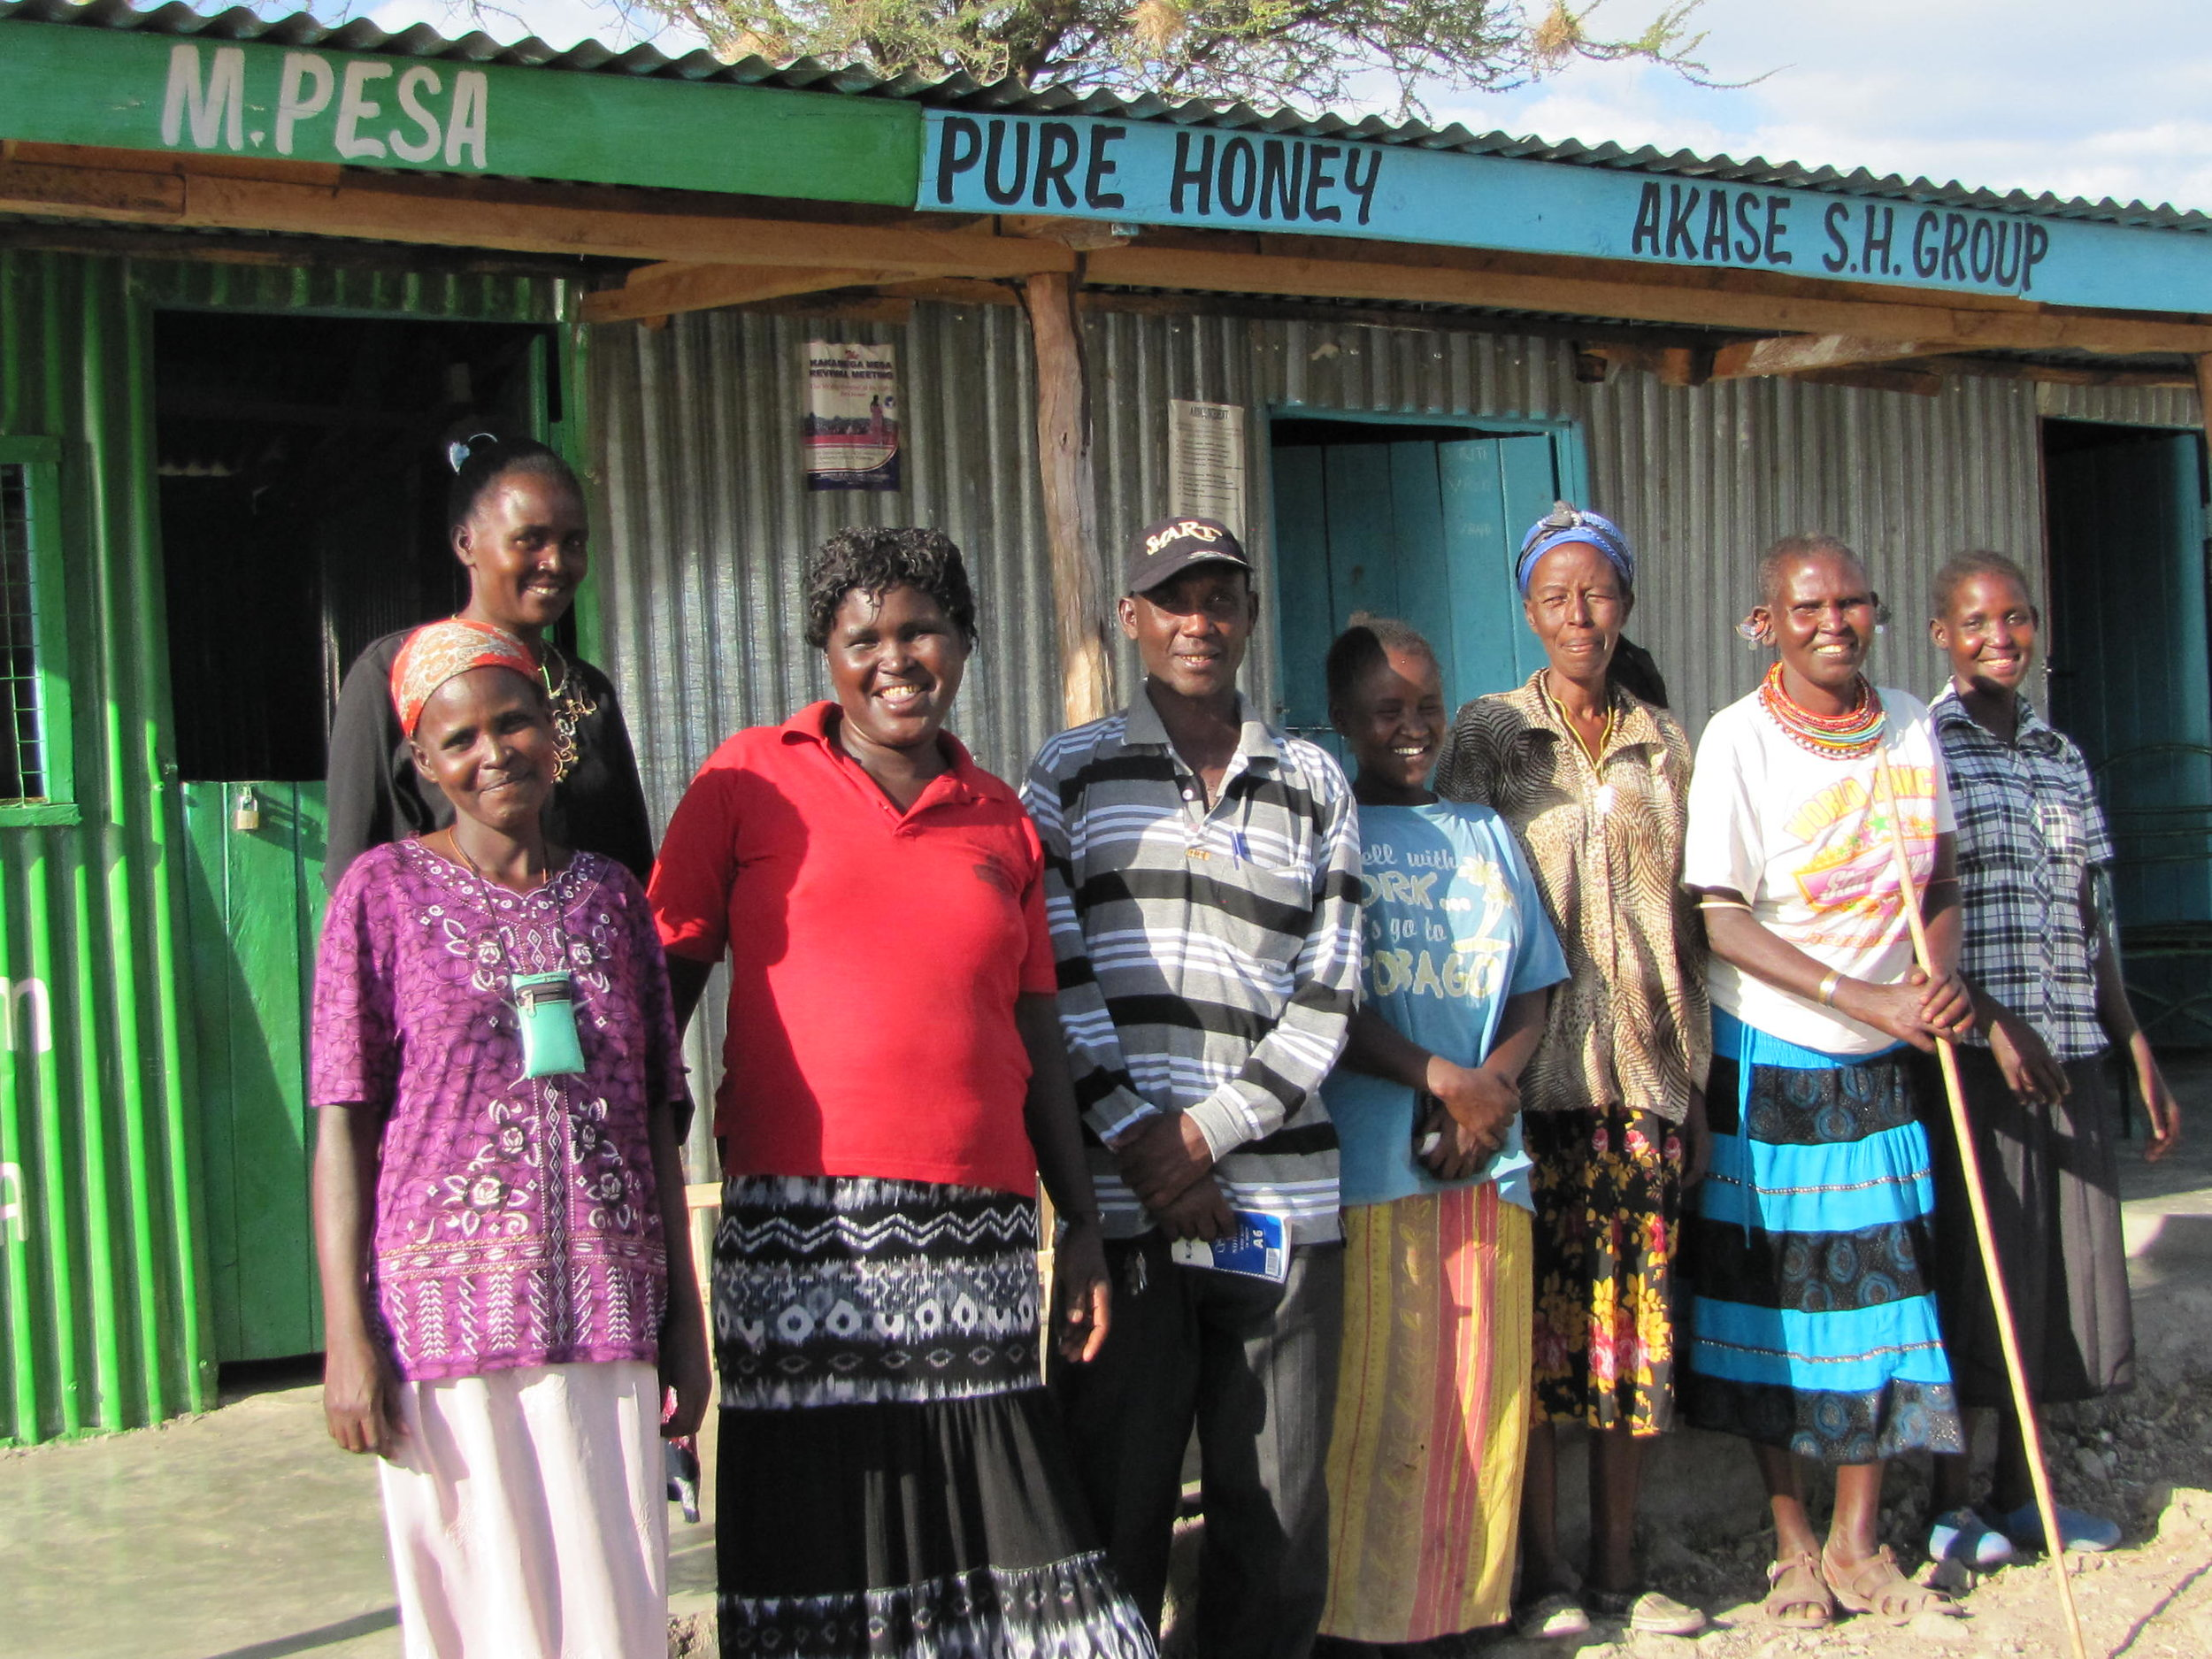 AKASE Self-Help Group in front of their place of business